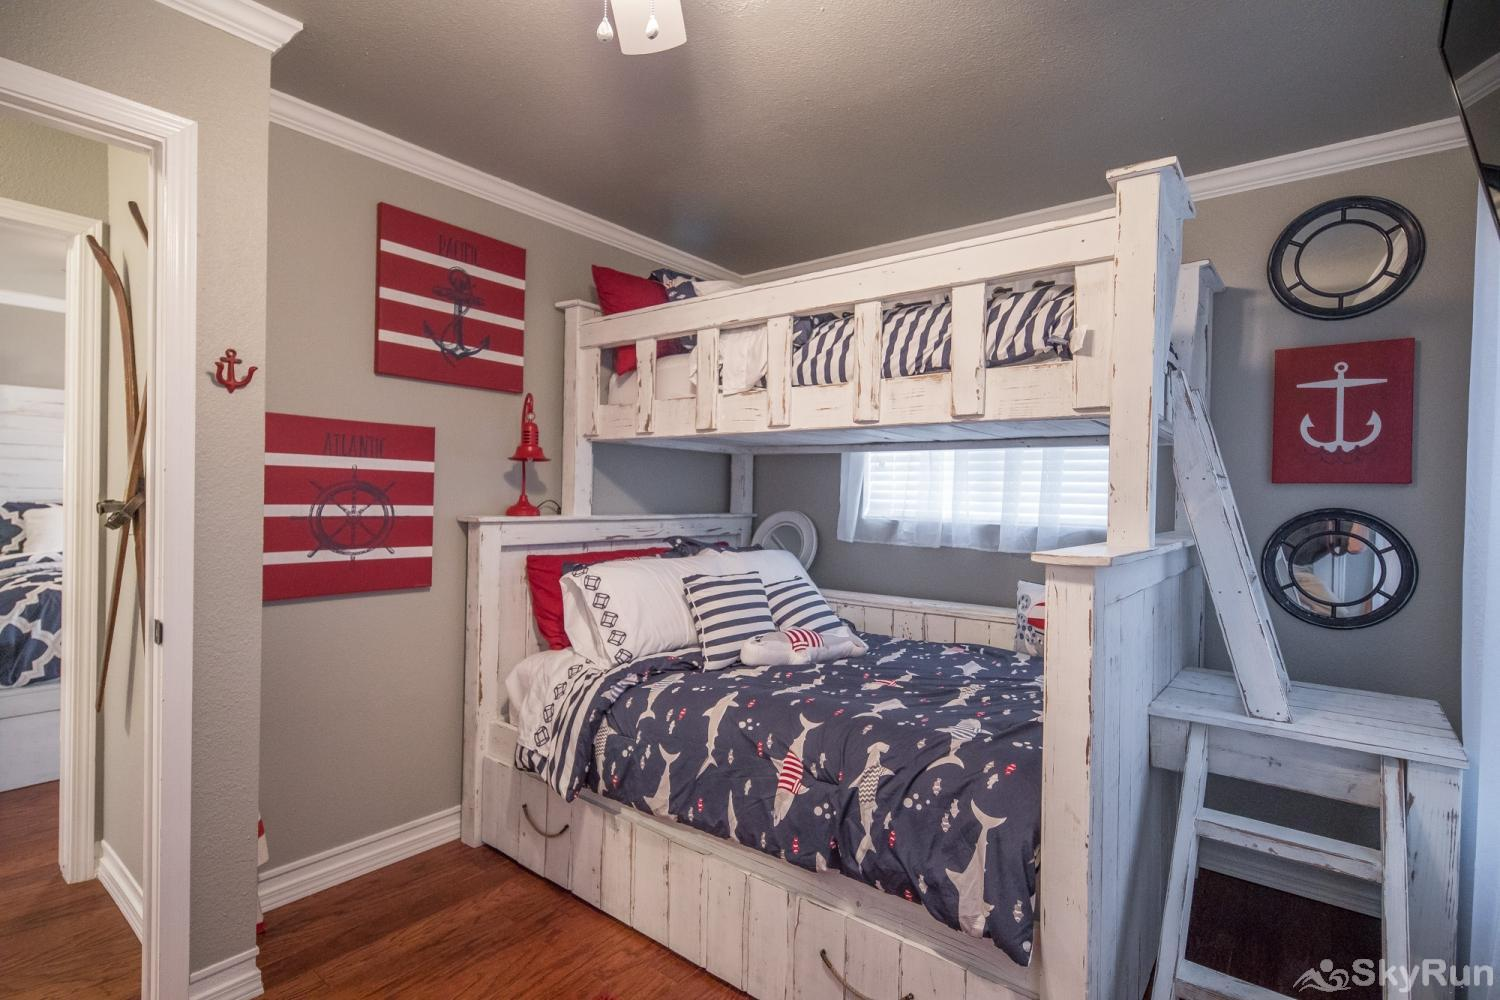 ANCHORS AWAY Kid's bunk room decorated in style